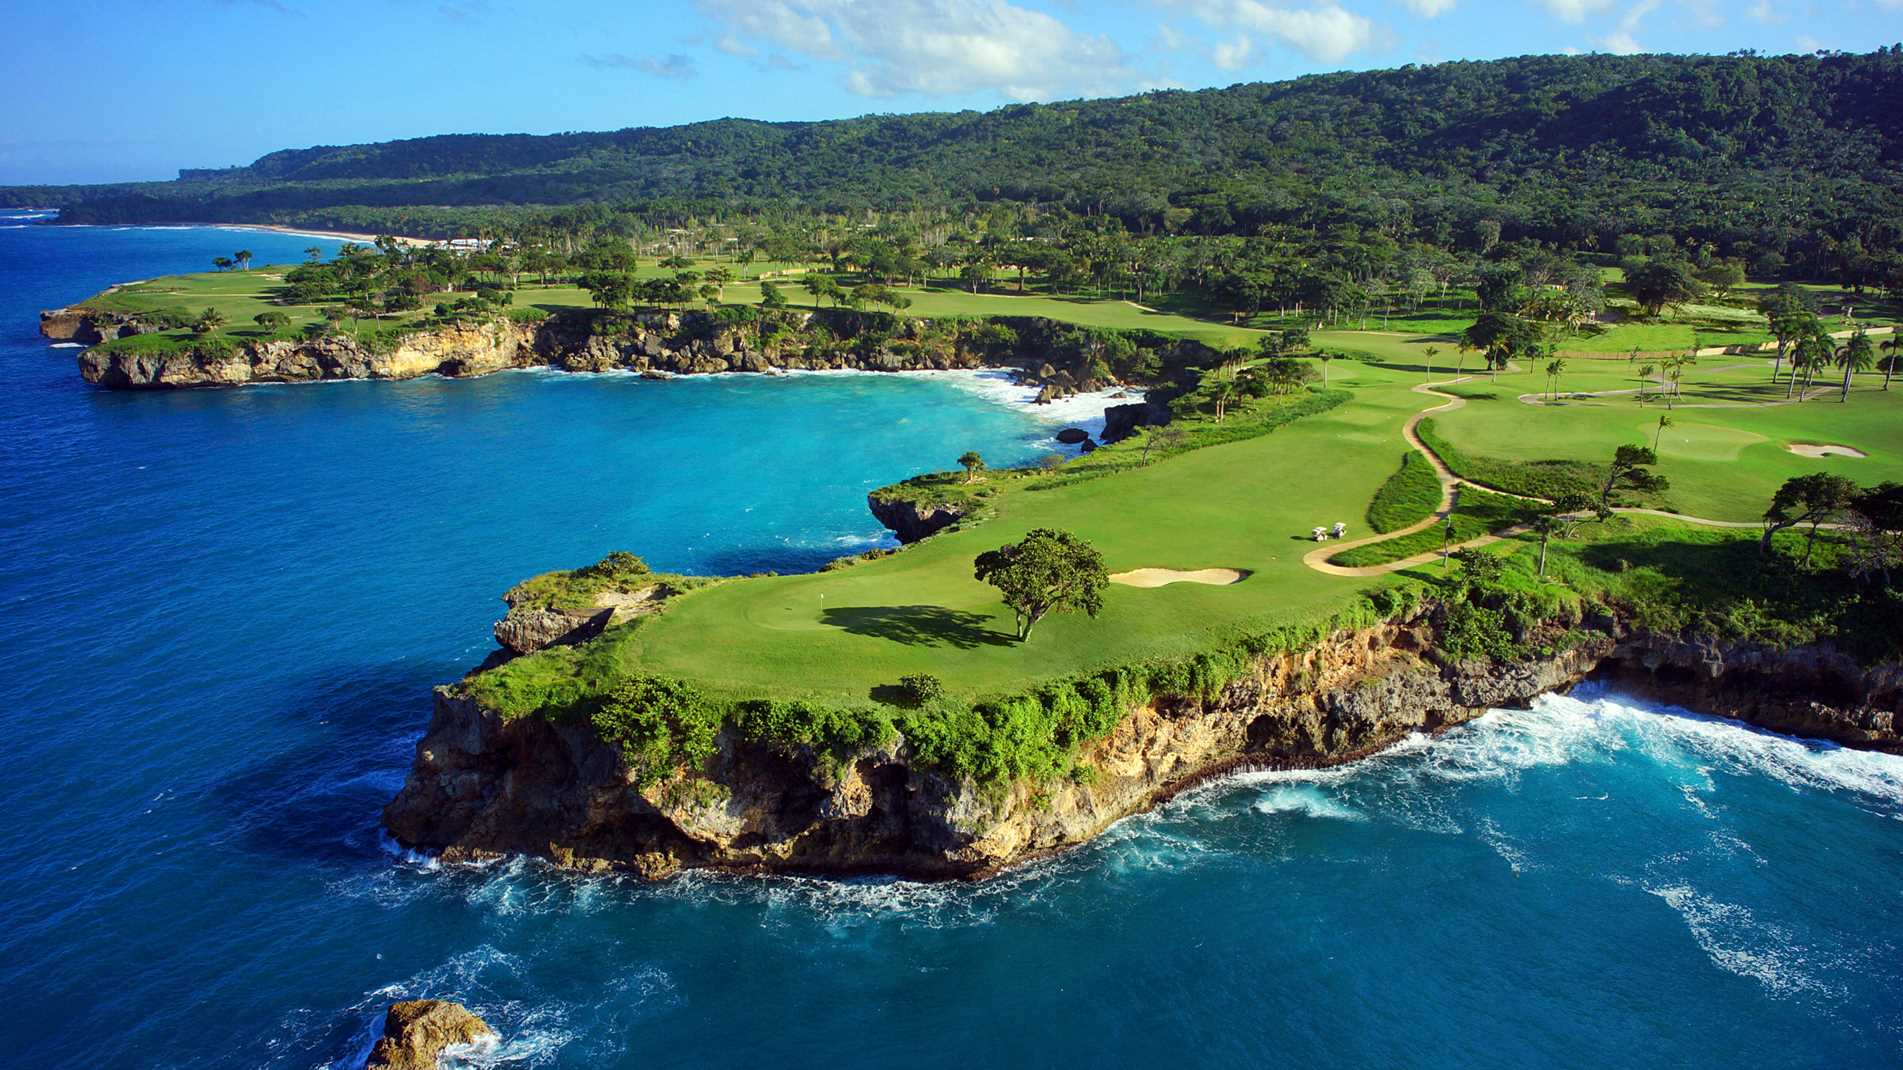 playa-grande-golf-course_high-res_3165.jpeg